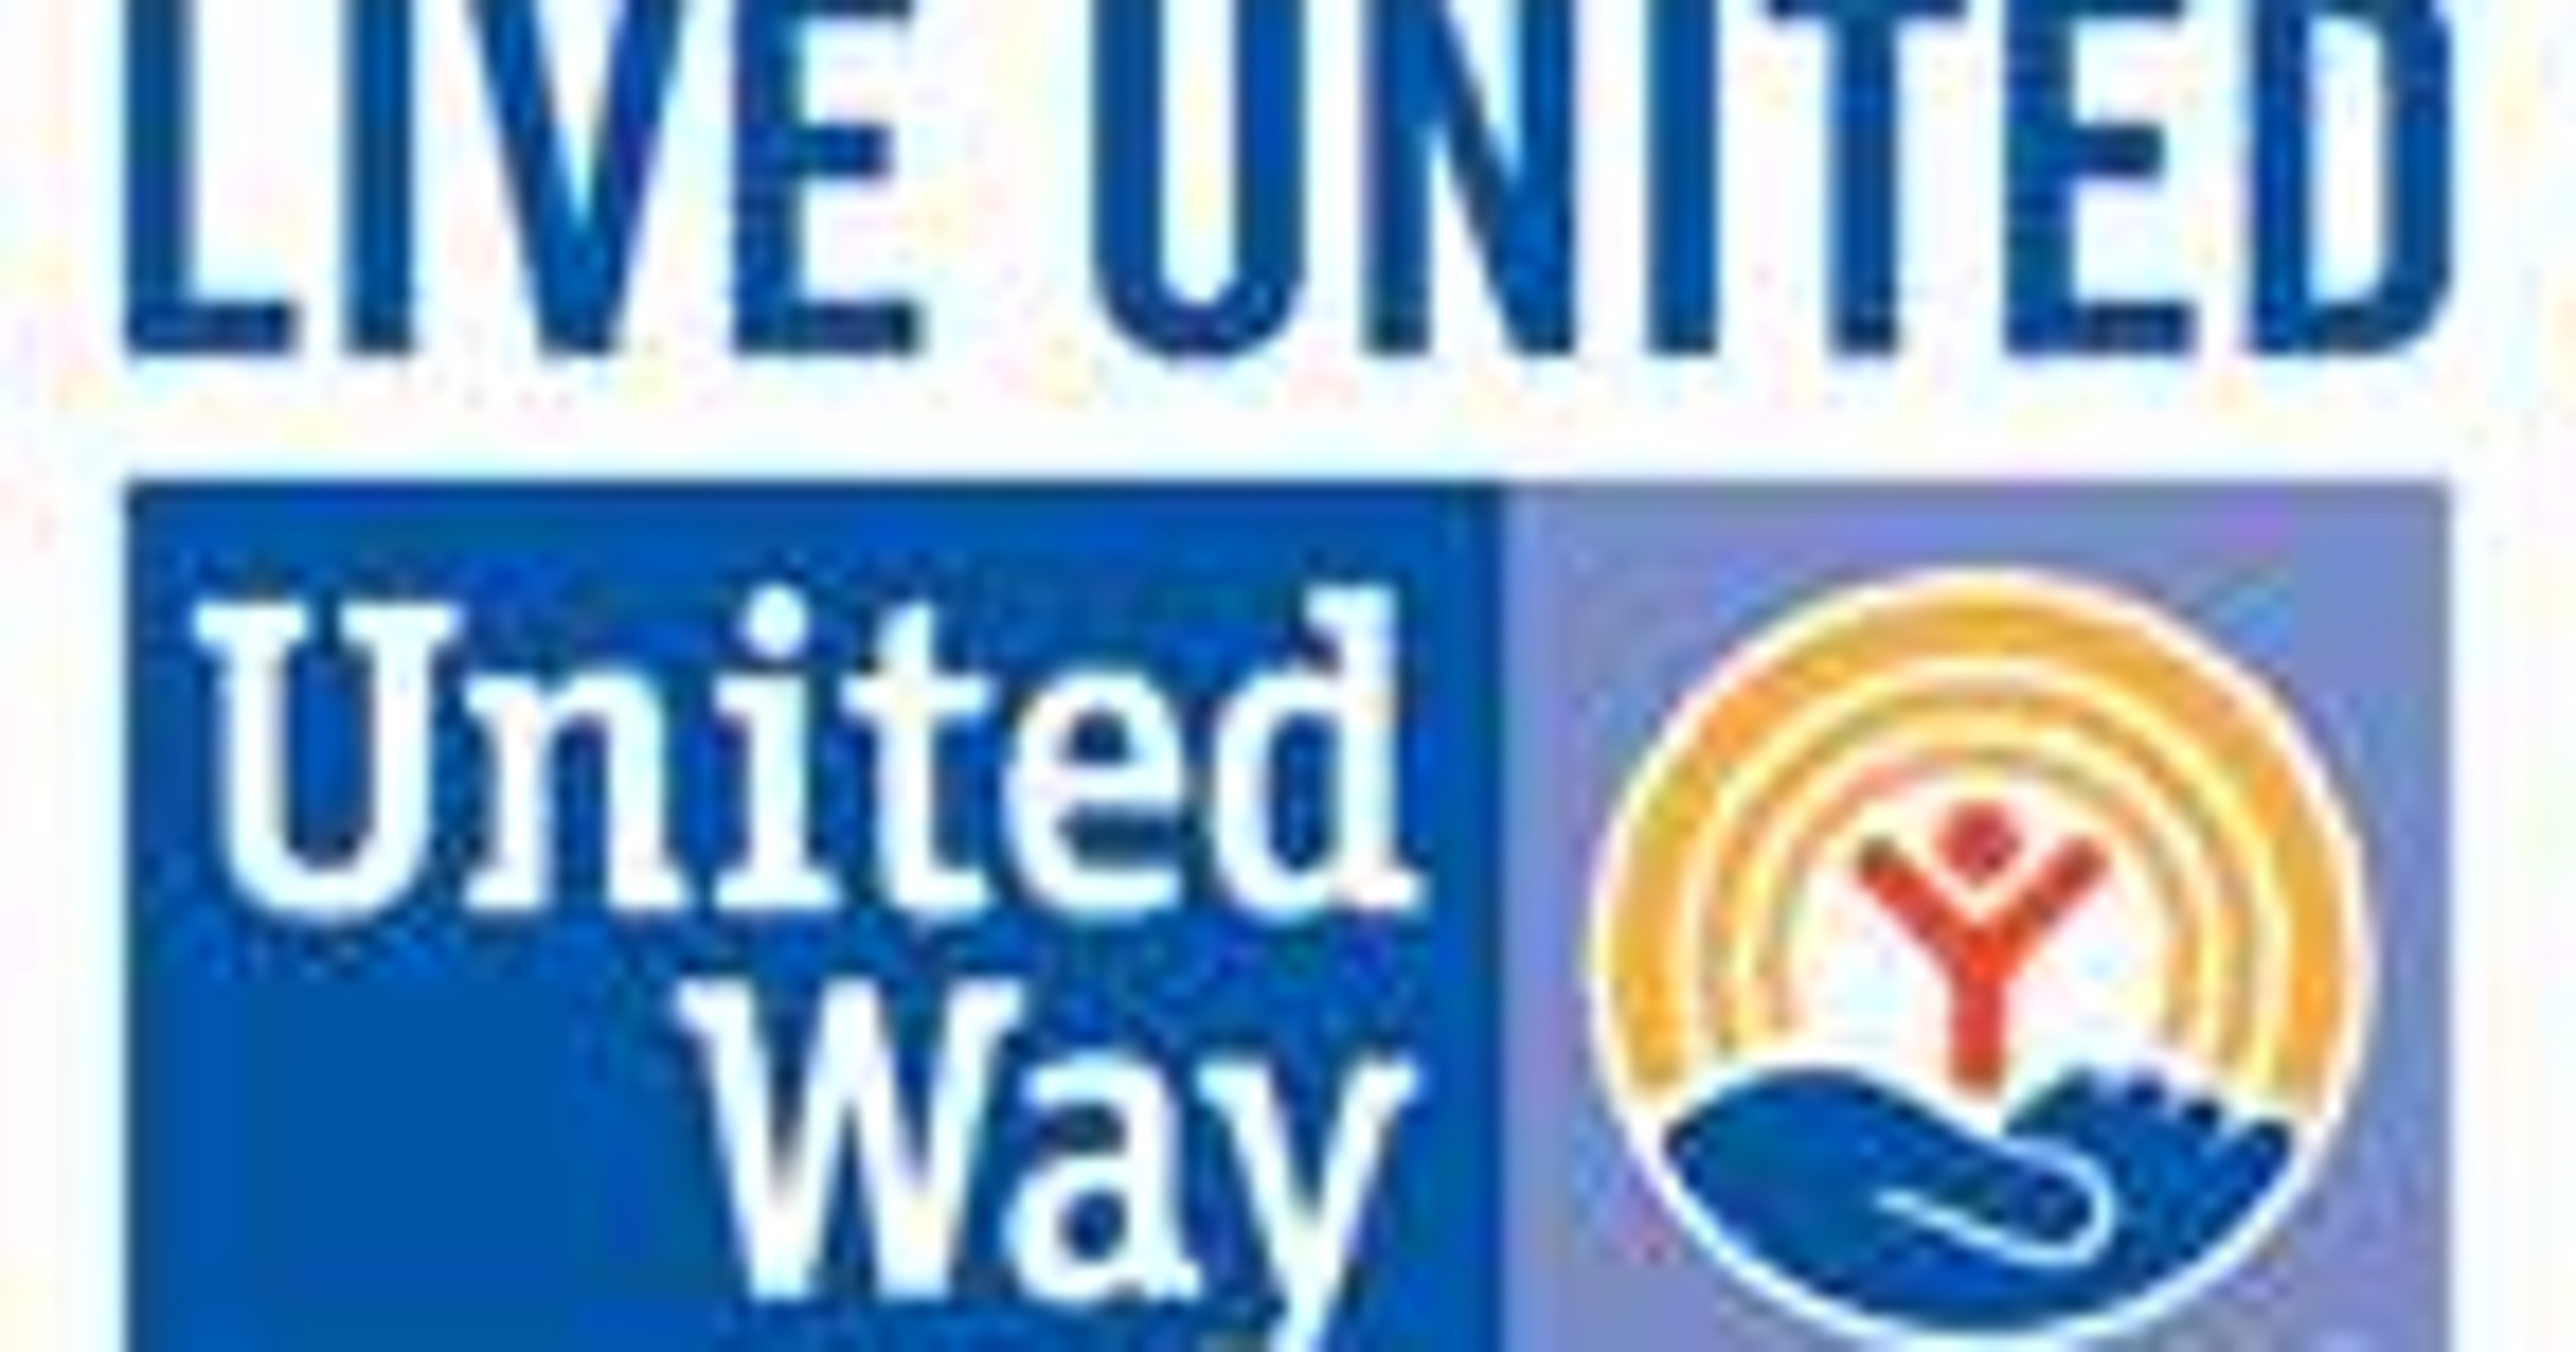 United Way of St. Lucie County offers Education.